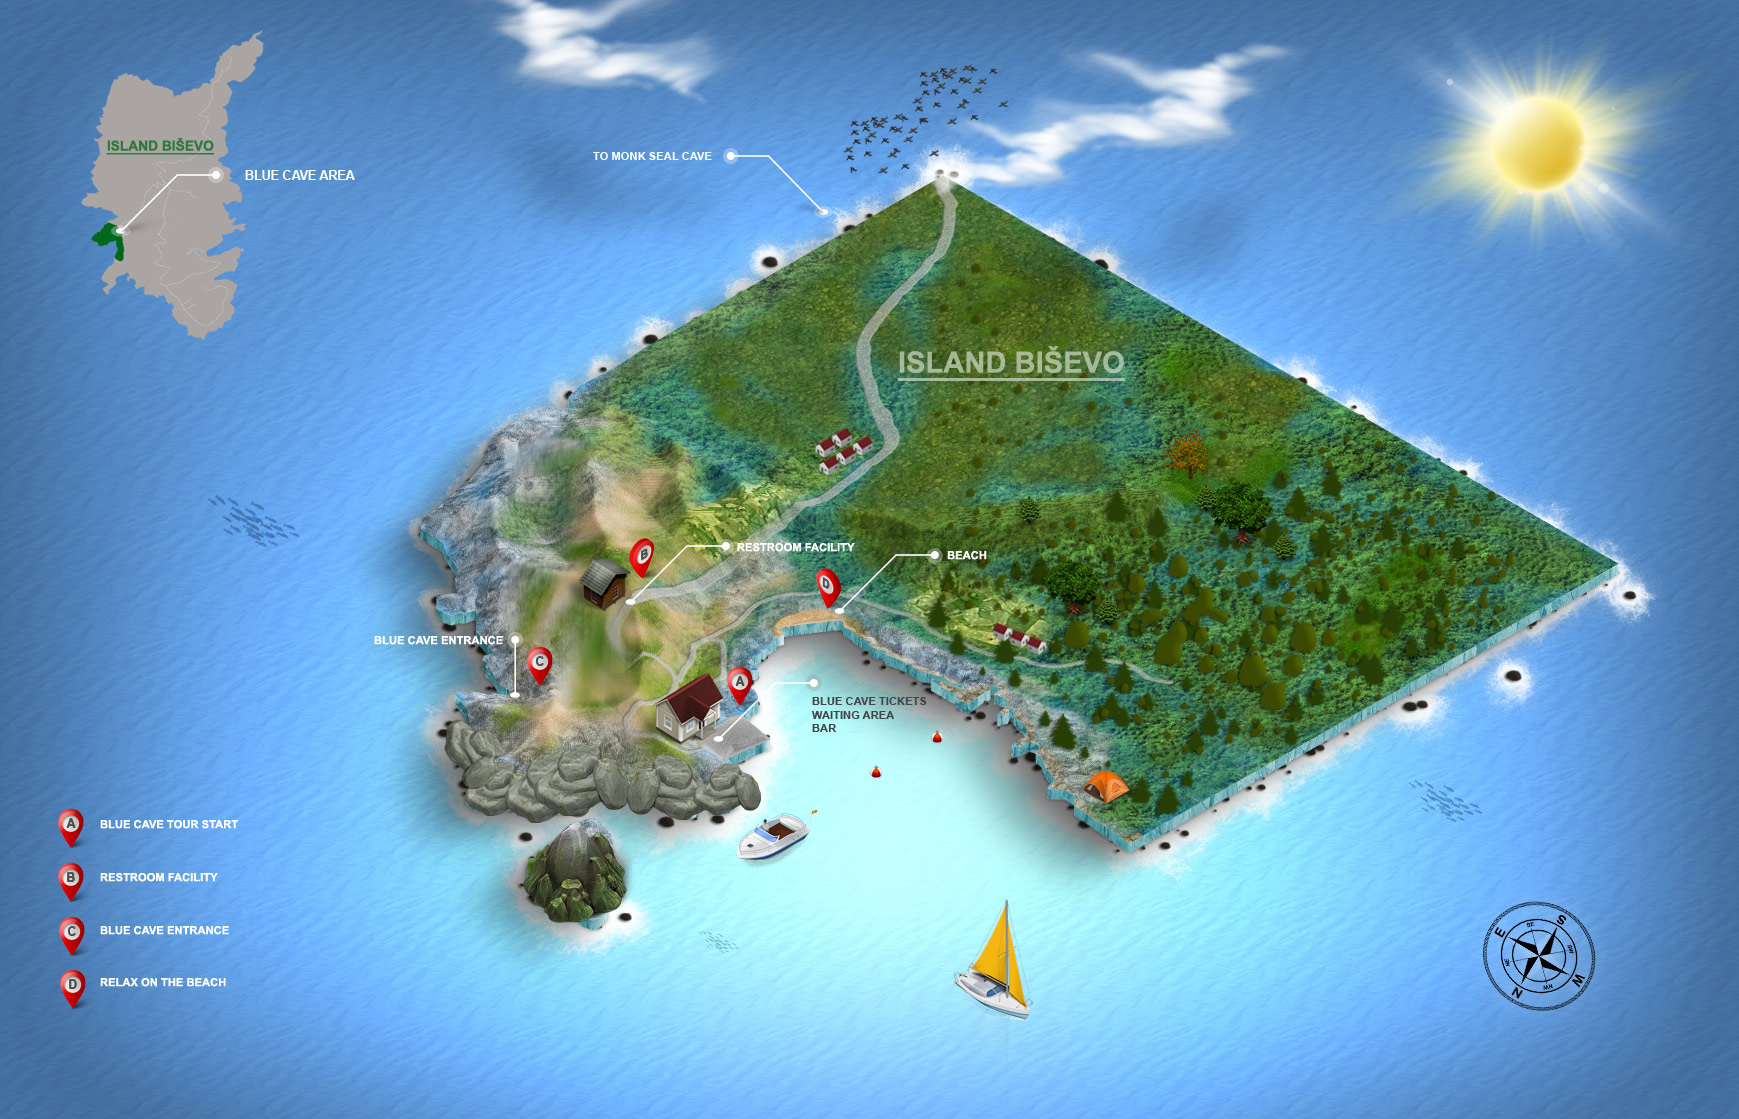 Infographic of the Blue Cave area on Bisevo island